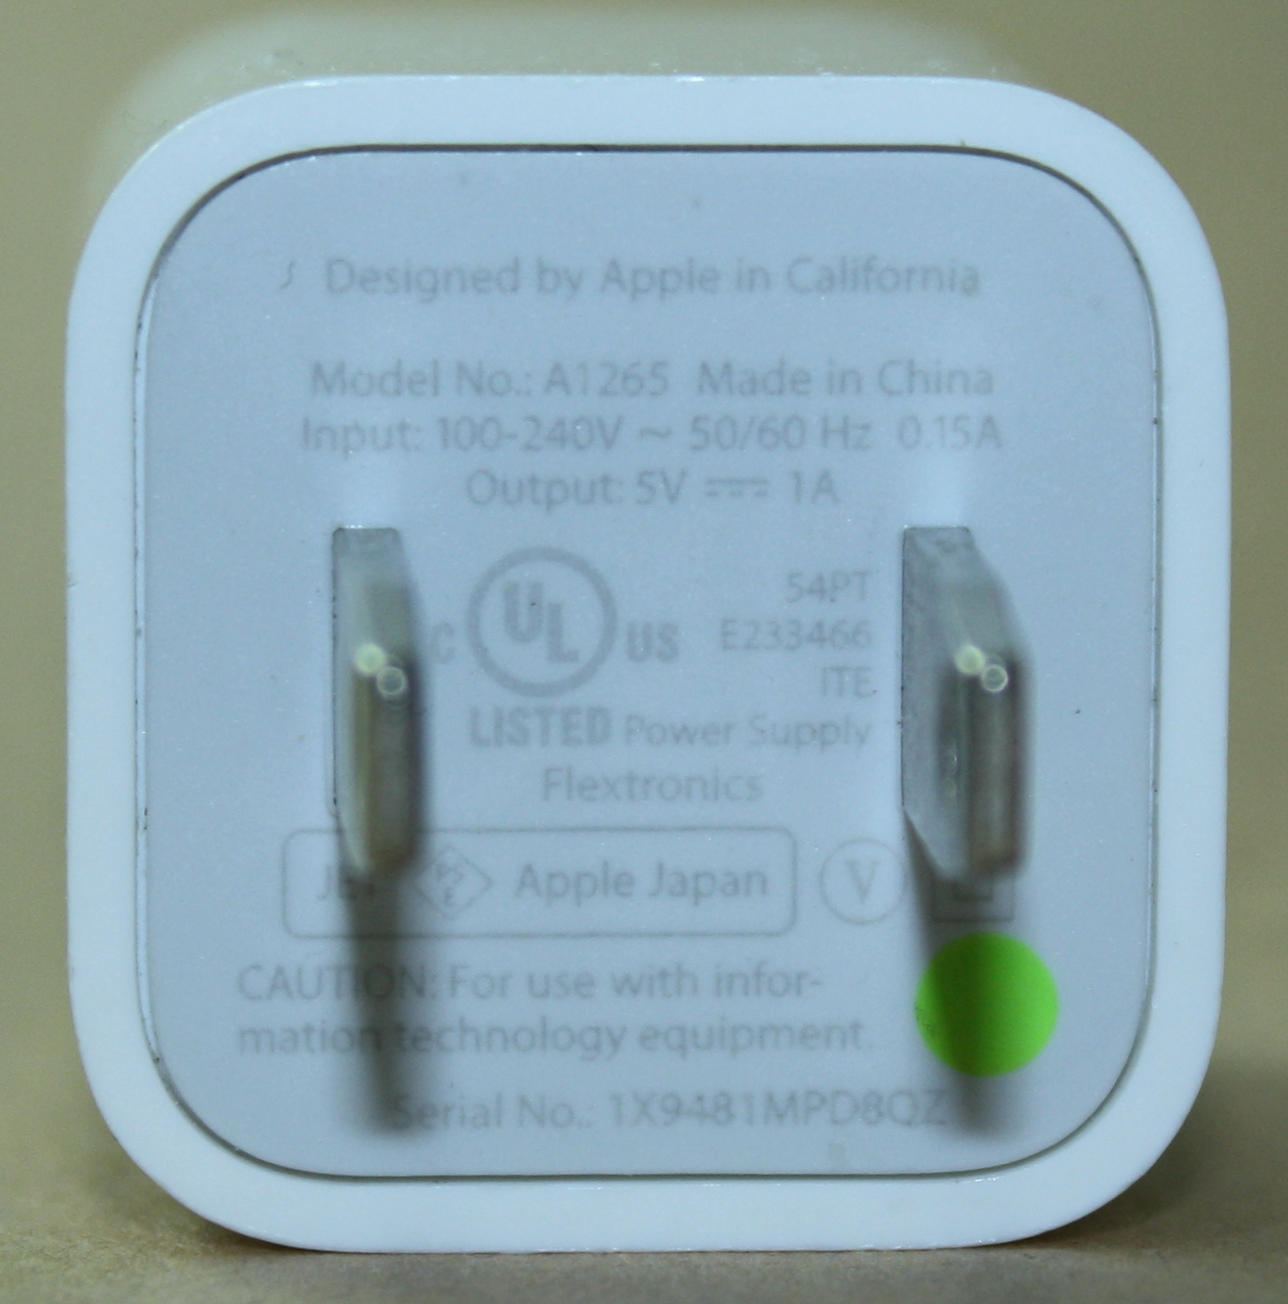 Apple Iphone Charger Teardown Quality In A Tiny Expensive Package 5 Block Diagram Apples 2008 Safety Recall